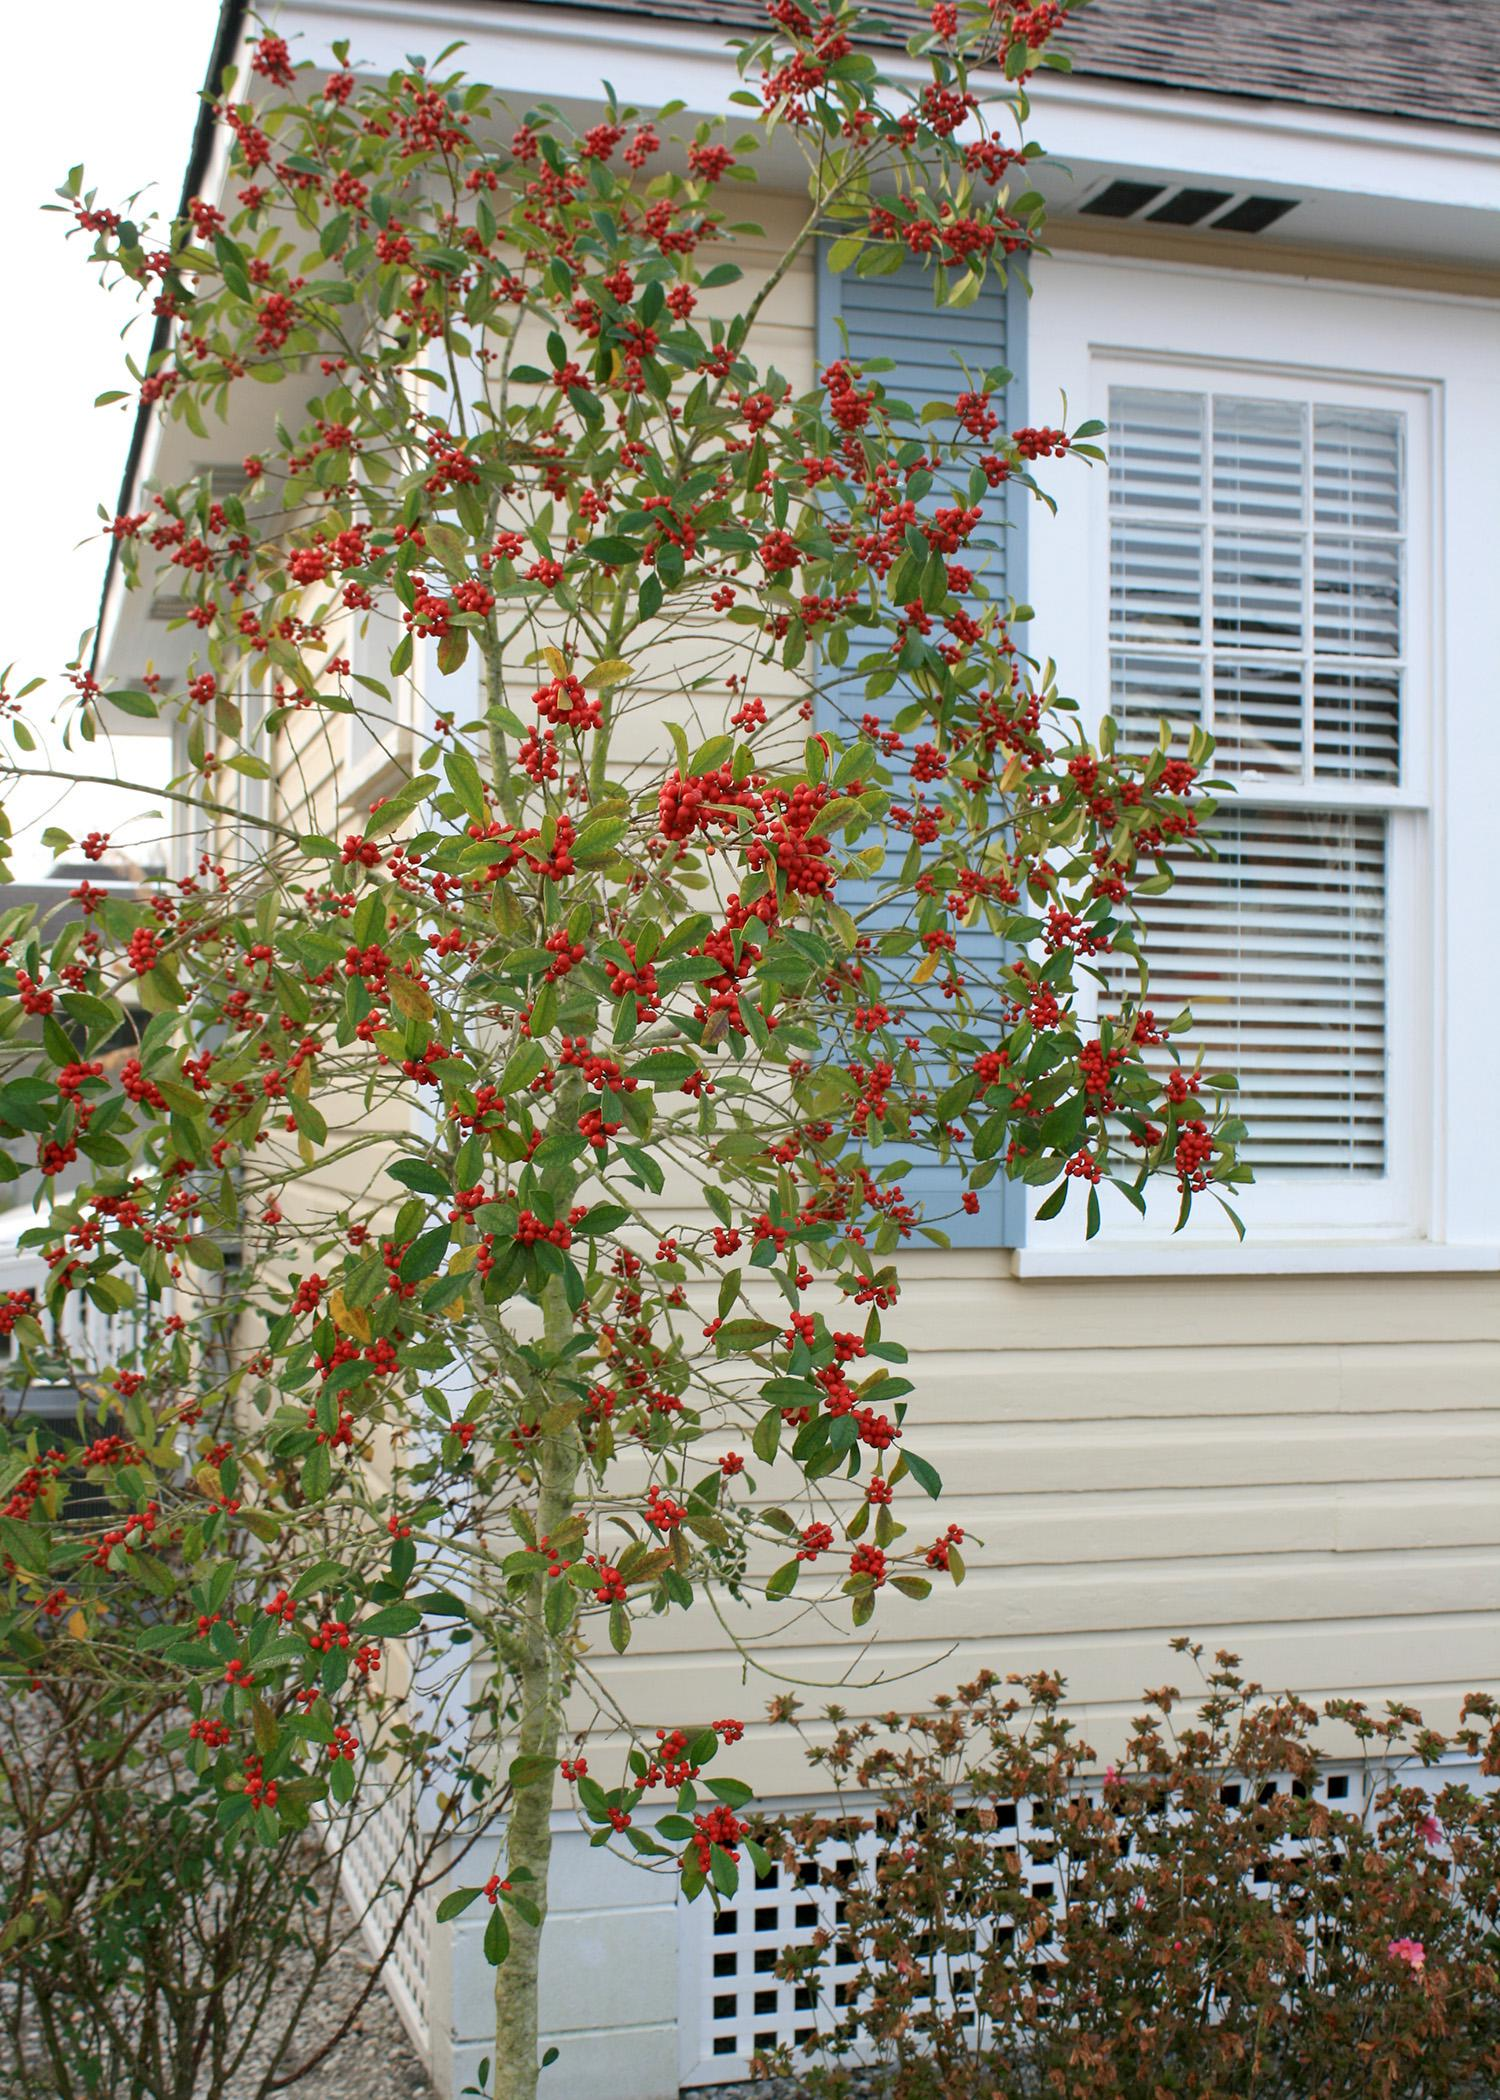 The Savannah holly has a natural pyramidal growth habit that is loose and open. It can be used as a screen or a single specimen. (Photo by MSU Extension Service/Gary Bachman)